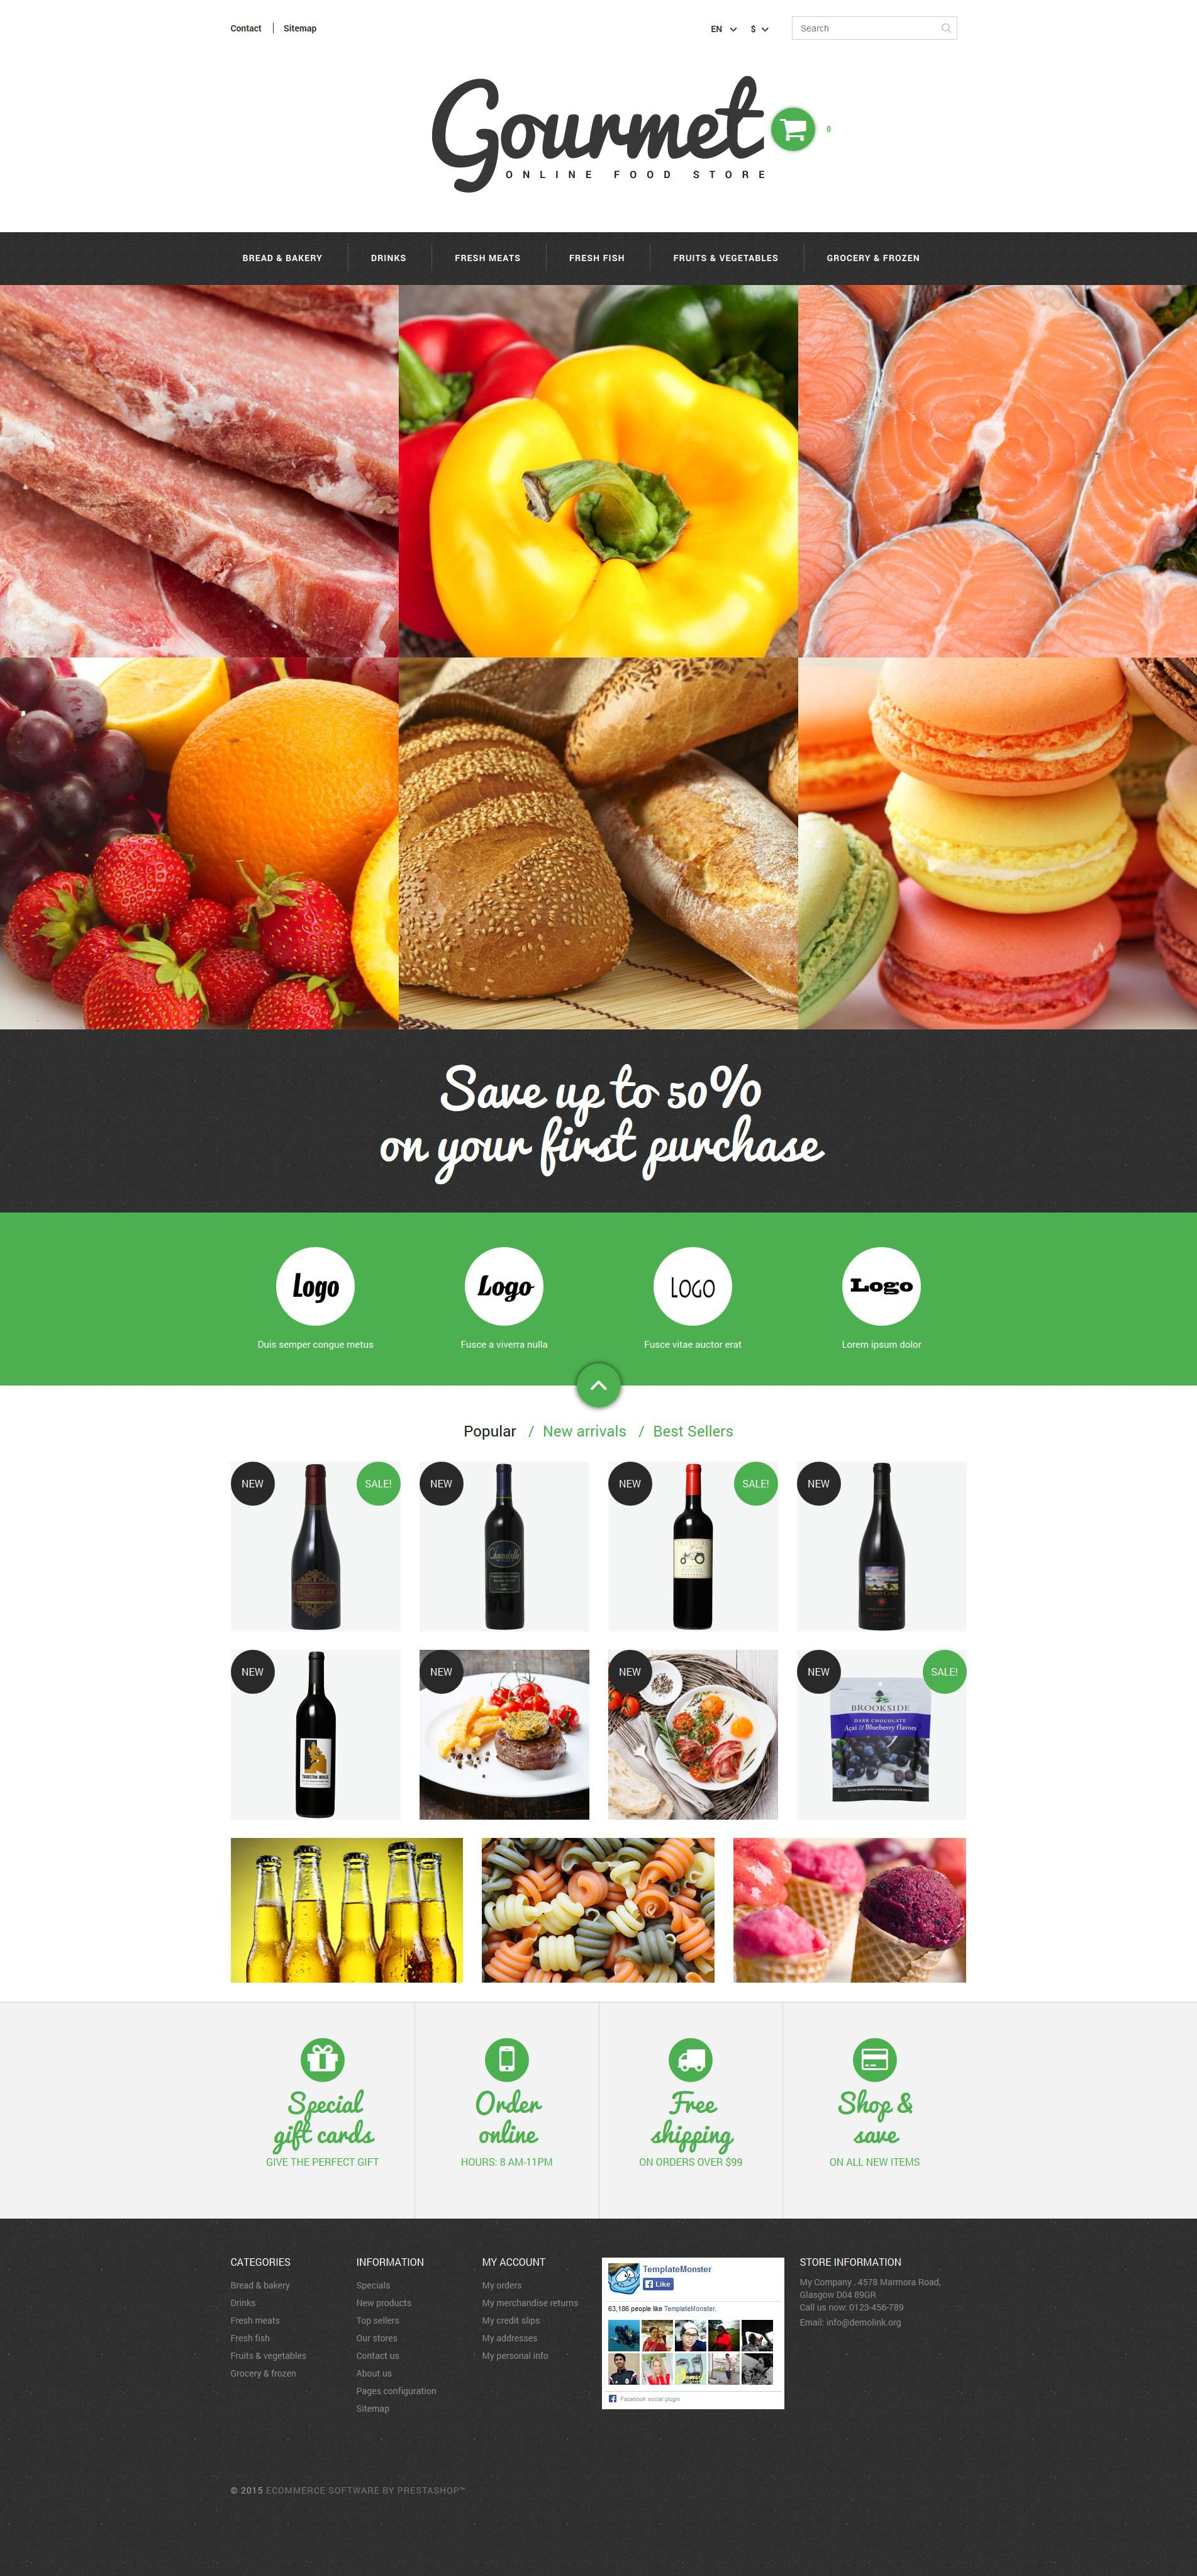 The Food Online Store PrestaShop Design 53531, one of the best PrestaShop themes of its kind (food & drink, most popular), also known as food online store PrestaShop template, supermarket PrestaShop template, fruit PrestaShop template, natural company PrestaShop template, manufacturer PrestaShop template, manufacture PrestaShop template, production PrestaShop template, fresh PrestaShop template, beverage PrestaShop template, PSD template PrestaShop template, wine PrestaShop template, production PrestaShop template, cake PrestaShop template, cakes PrestaShop template, food PrestaShop template, feast PrestaShop template, tasty PrestaShop template, delicious PrestaShop template, gourmet PrestaShop template, vegetables PrestaShop template, fruits and related with food online store, supermarket, fruit, natural company, manufacturer, manufacture, production, fresh, beverage, PSD template, wine, production, cake, cakes, food, feast, tasty, delicious, gourmet, vegetables, fruits, etc.